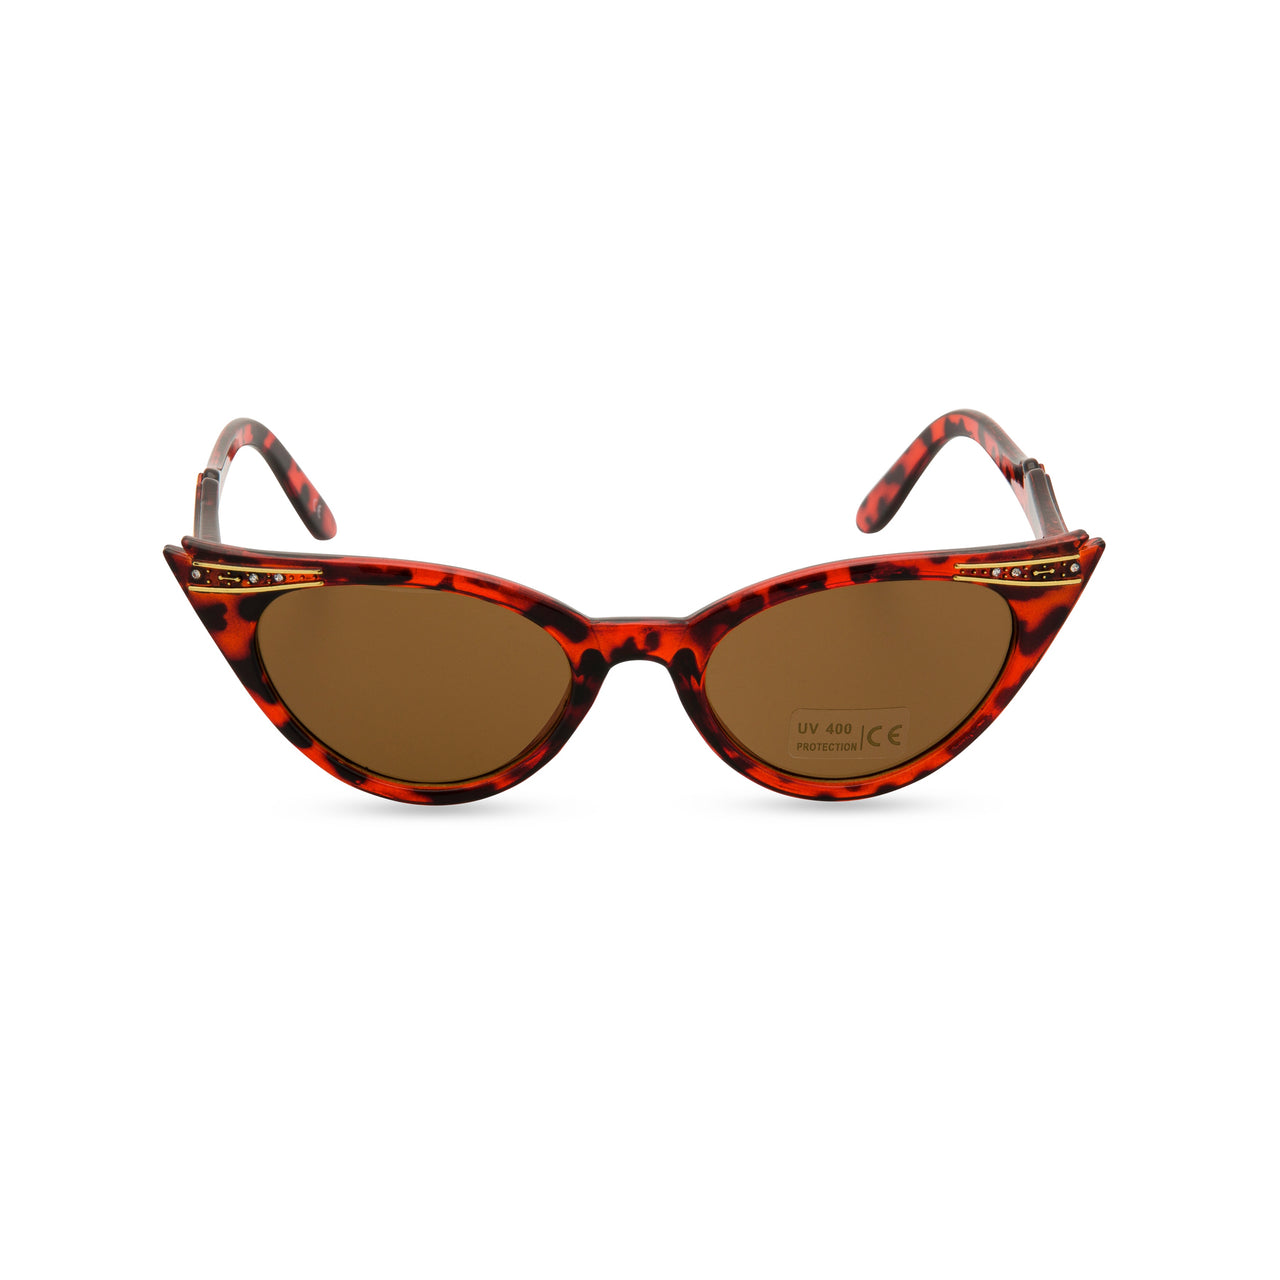 Retropeepers Betty cat eye sunglasses tortoiseshell - front view